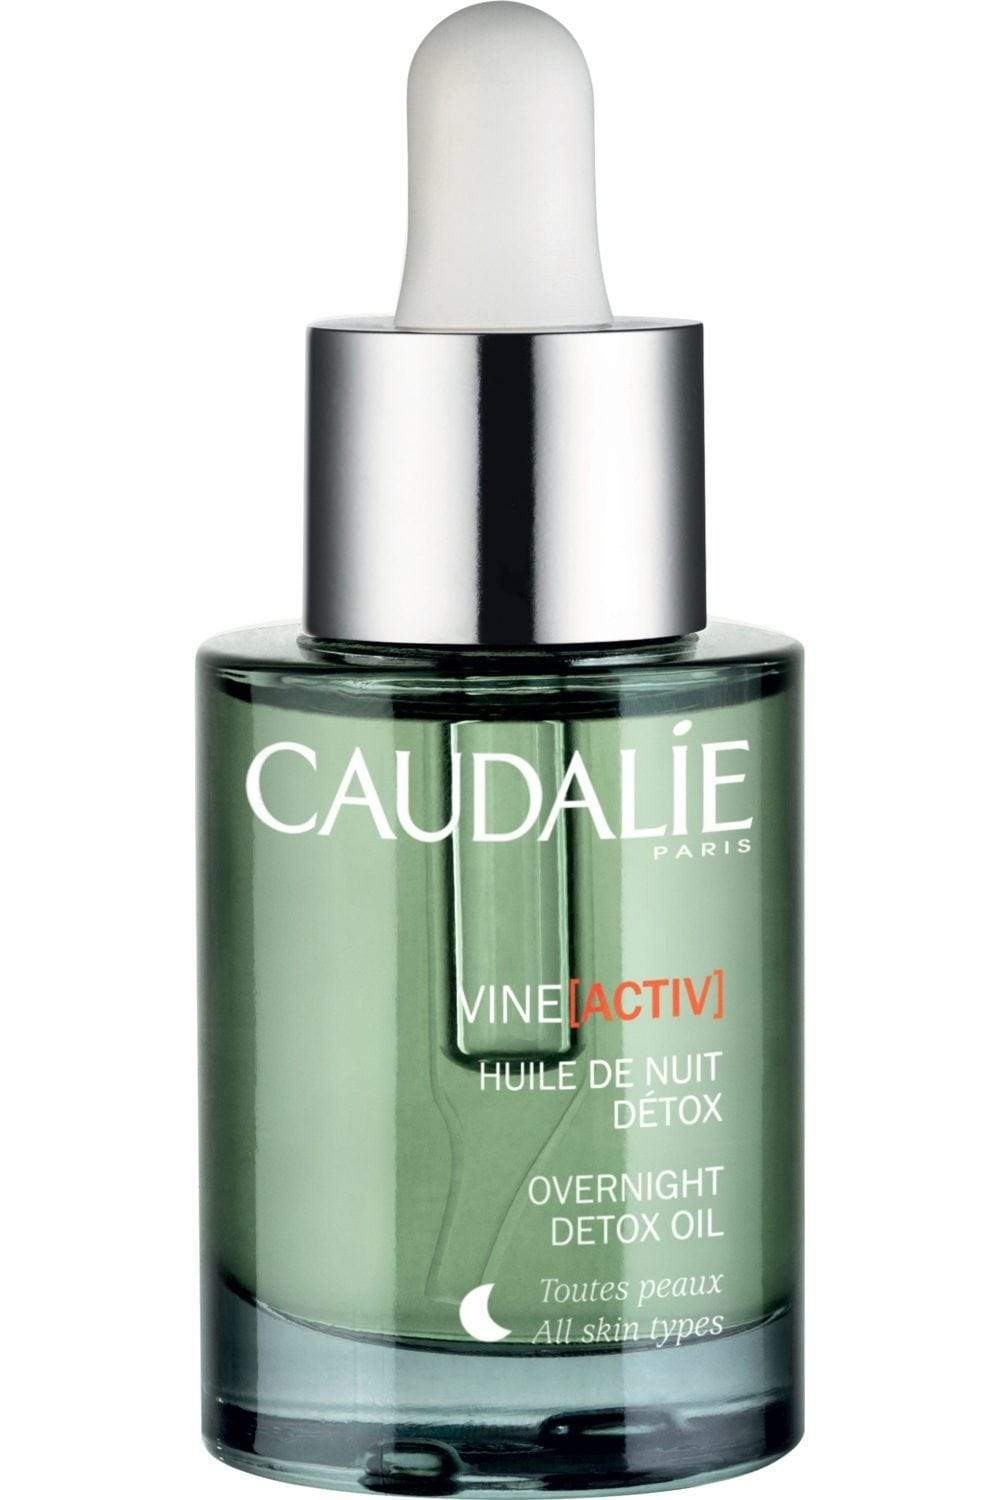 Caudalie VineActiv Overnight Detox Oil, 30ml, face oil, London Loves Beauty